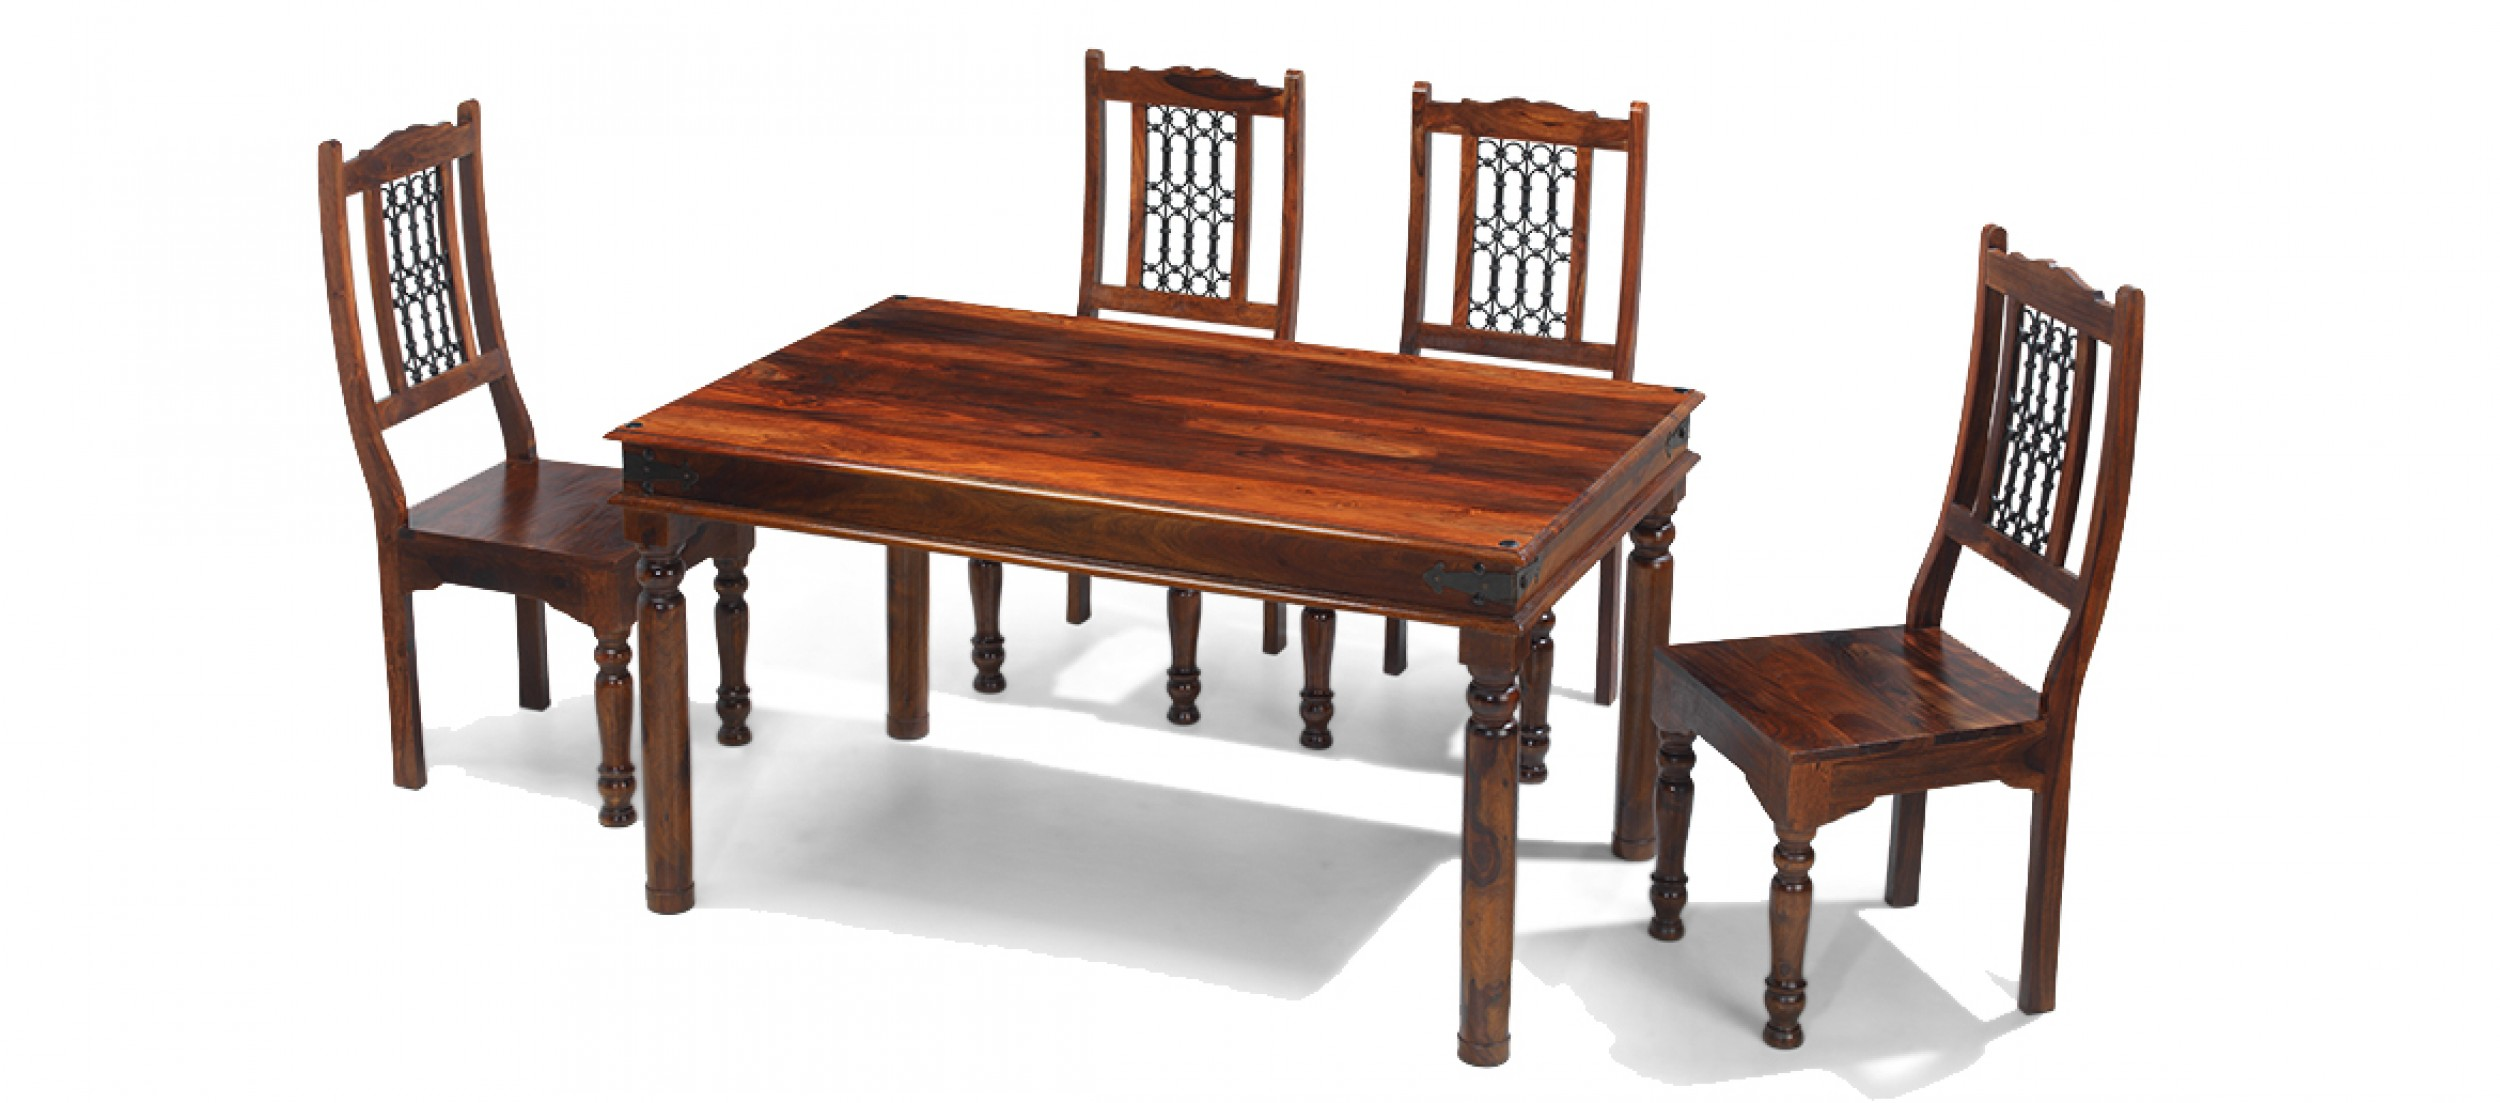 Jali sheesham 160 cm thakat dining table and 6 chairs quercus living - India dining table ...